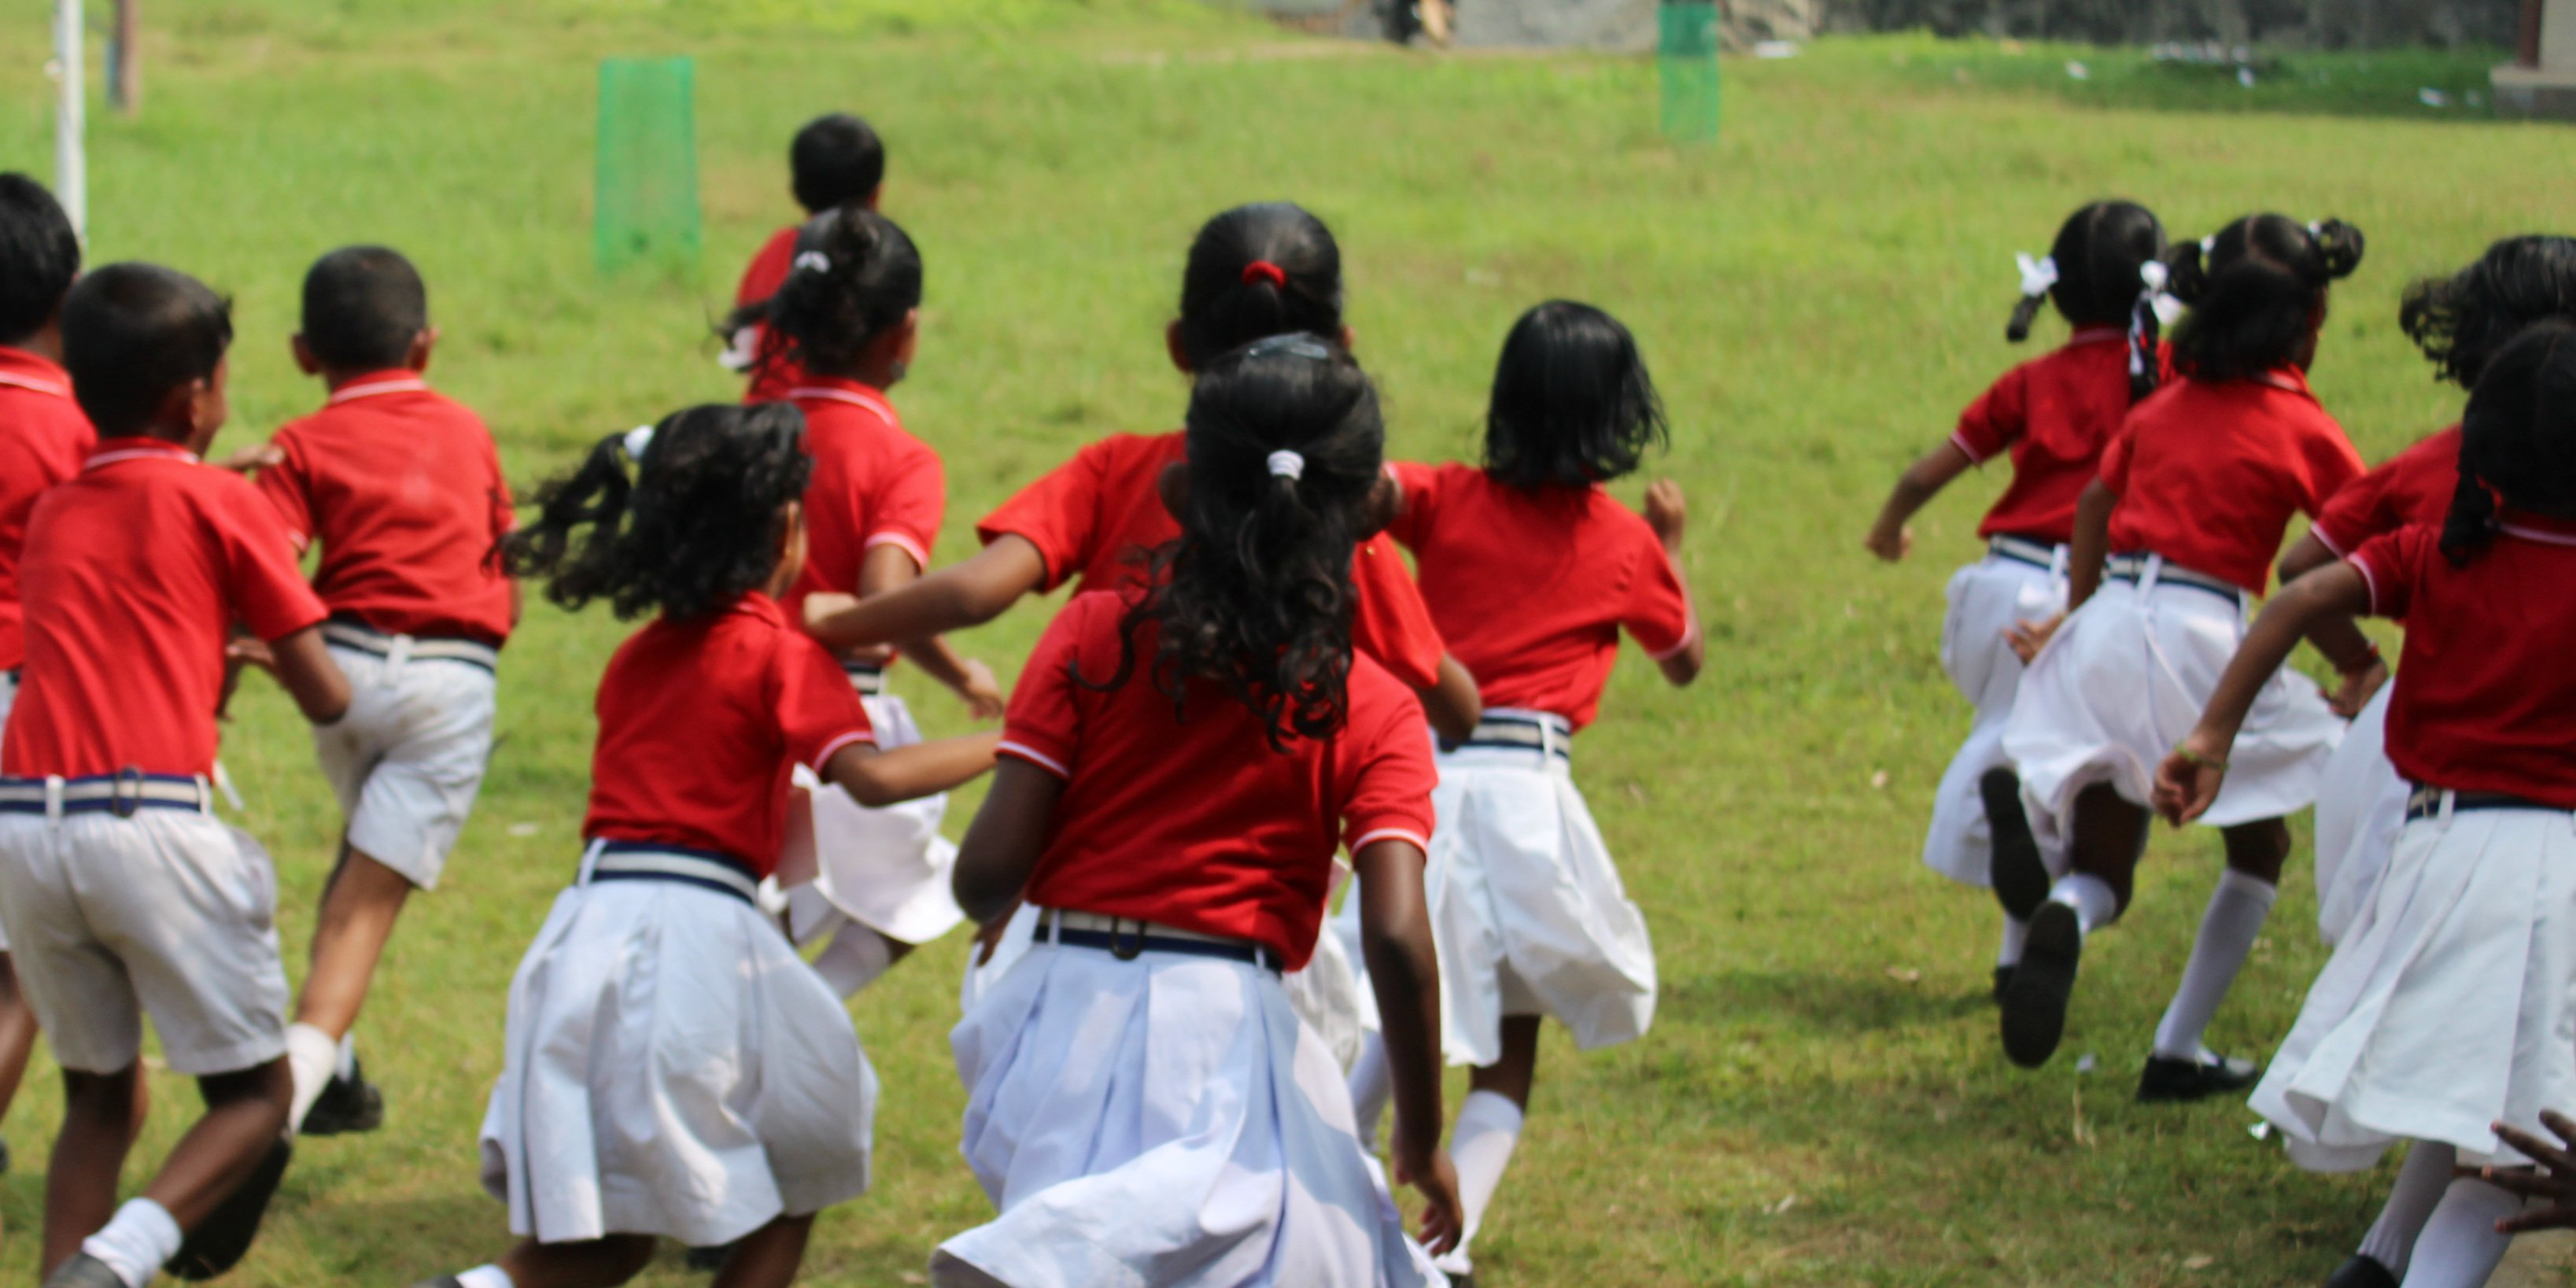 Schoolchildren take part in a sports program with GVI participants who are volunteering in India.